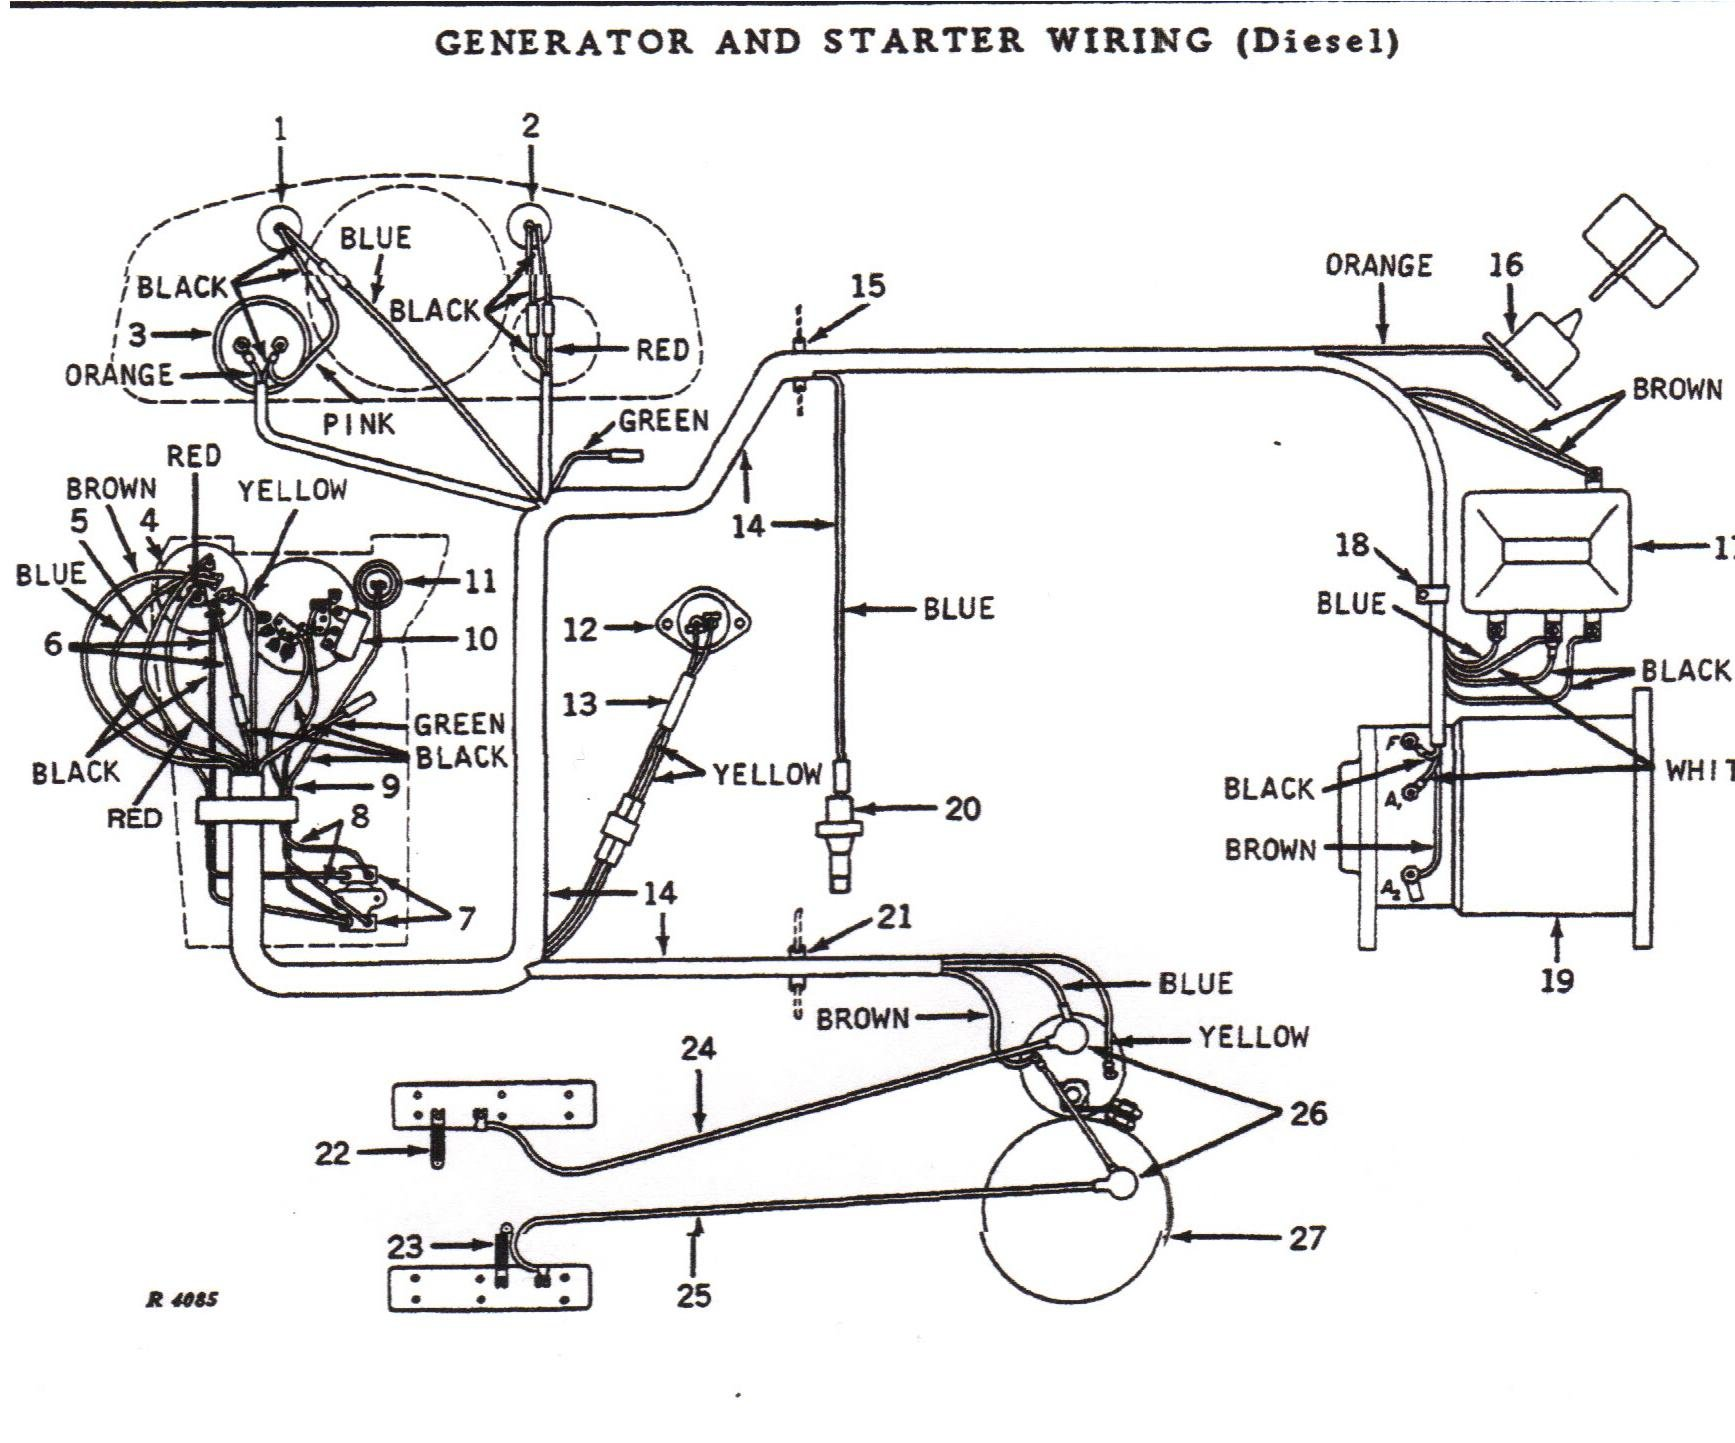 Bill Is My Name And 1966 Jd 4020 With 2 12v Batteries I Am Rewiring Iveco Tector Wiring Diagram E555edce Fbb0 49b3 A4e9 B782df35b566 John Deere 4010